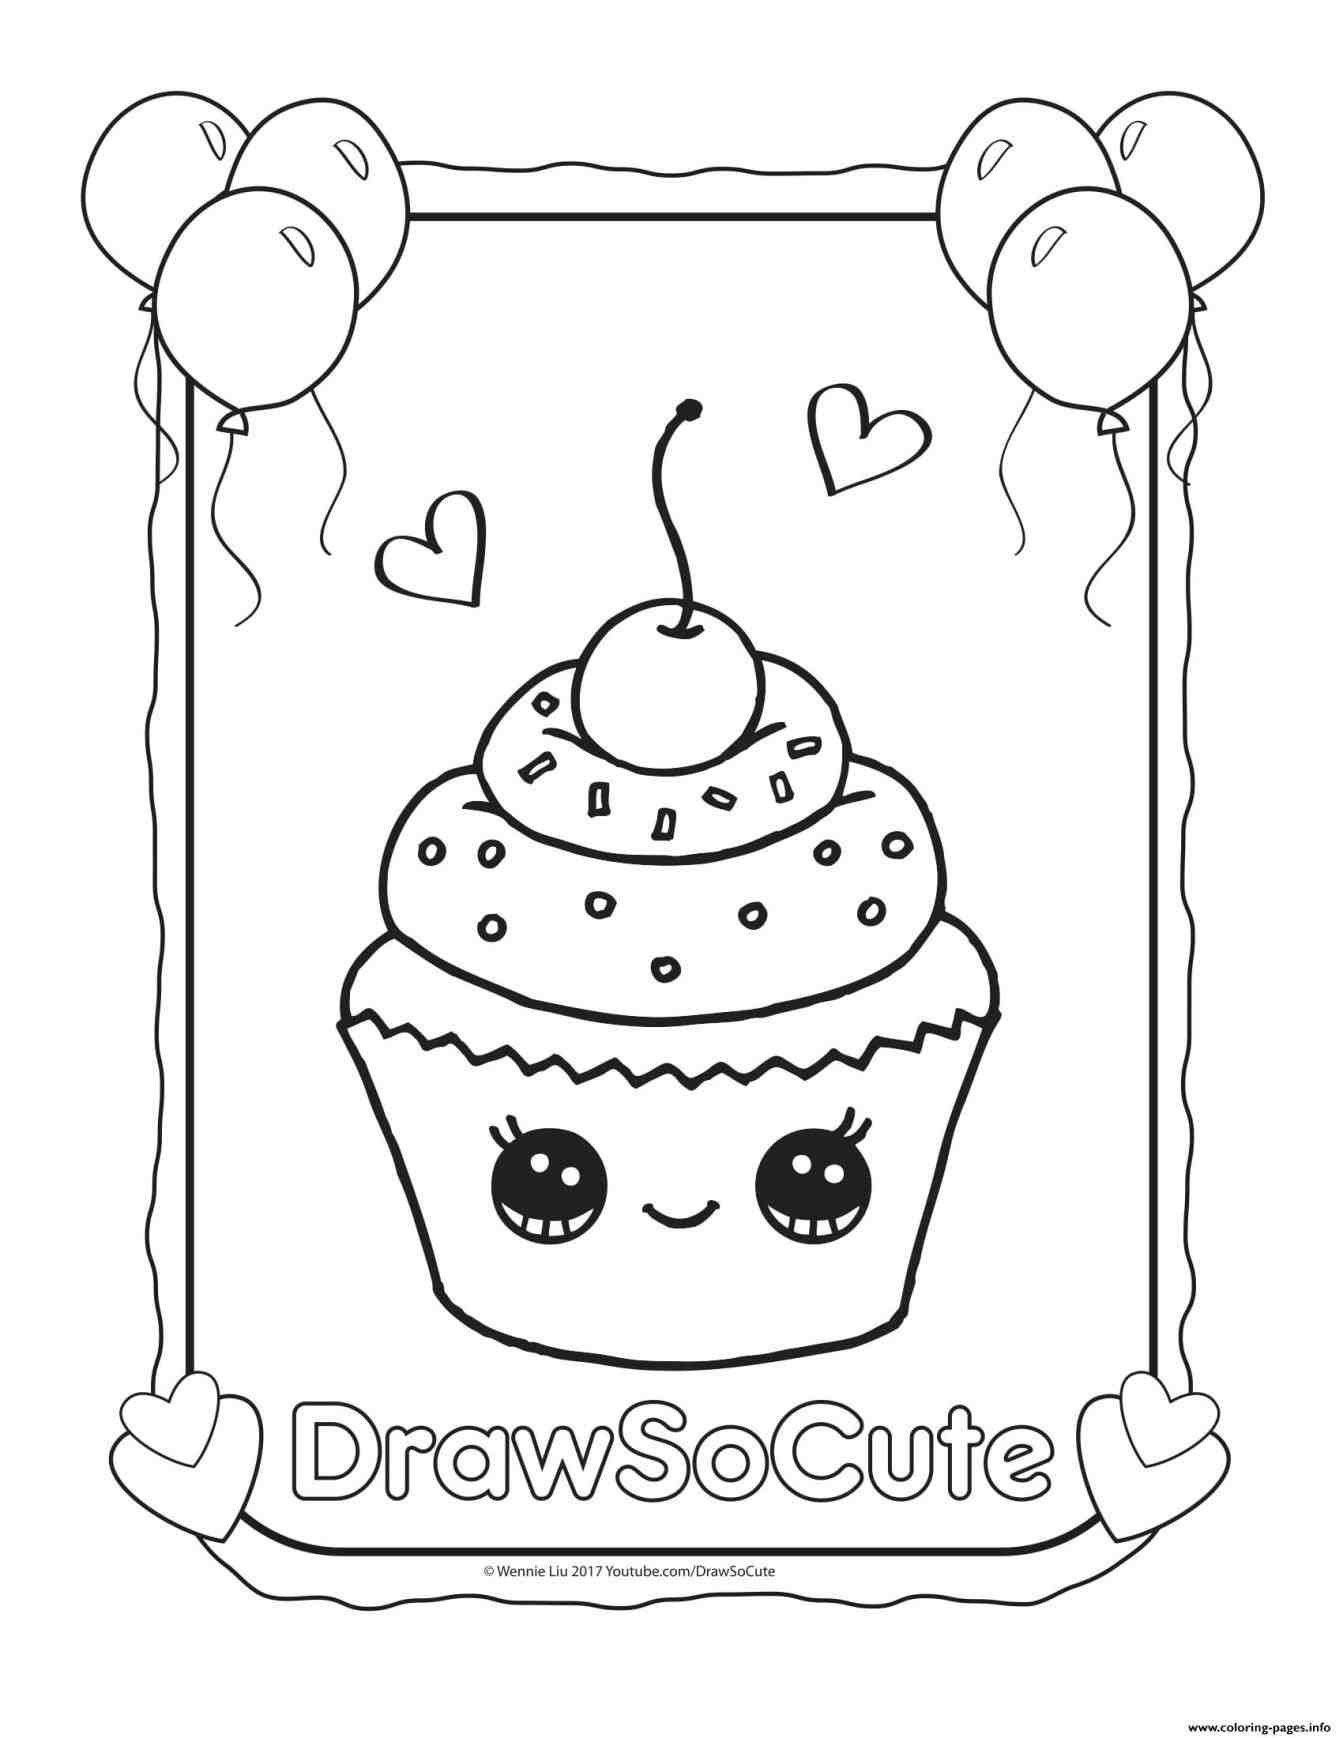 Unicorn Cake Coloring Page Youngandtae Com In 2020 Food Coloring Pages Cute Coloring Pages Cupcake Coloring Pages